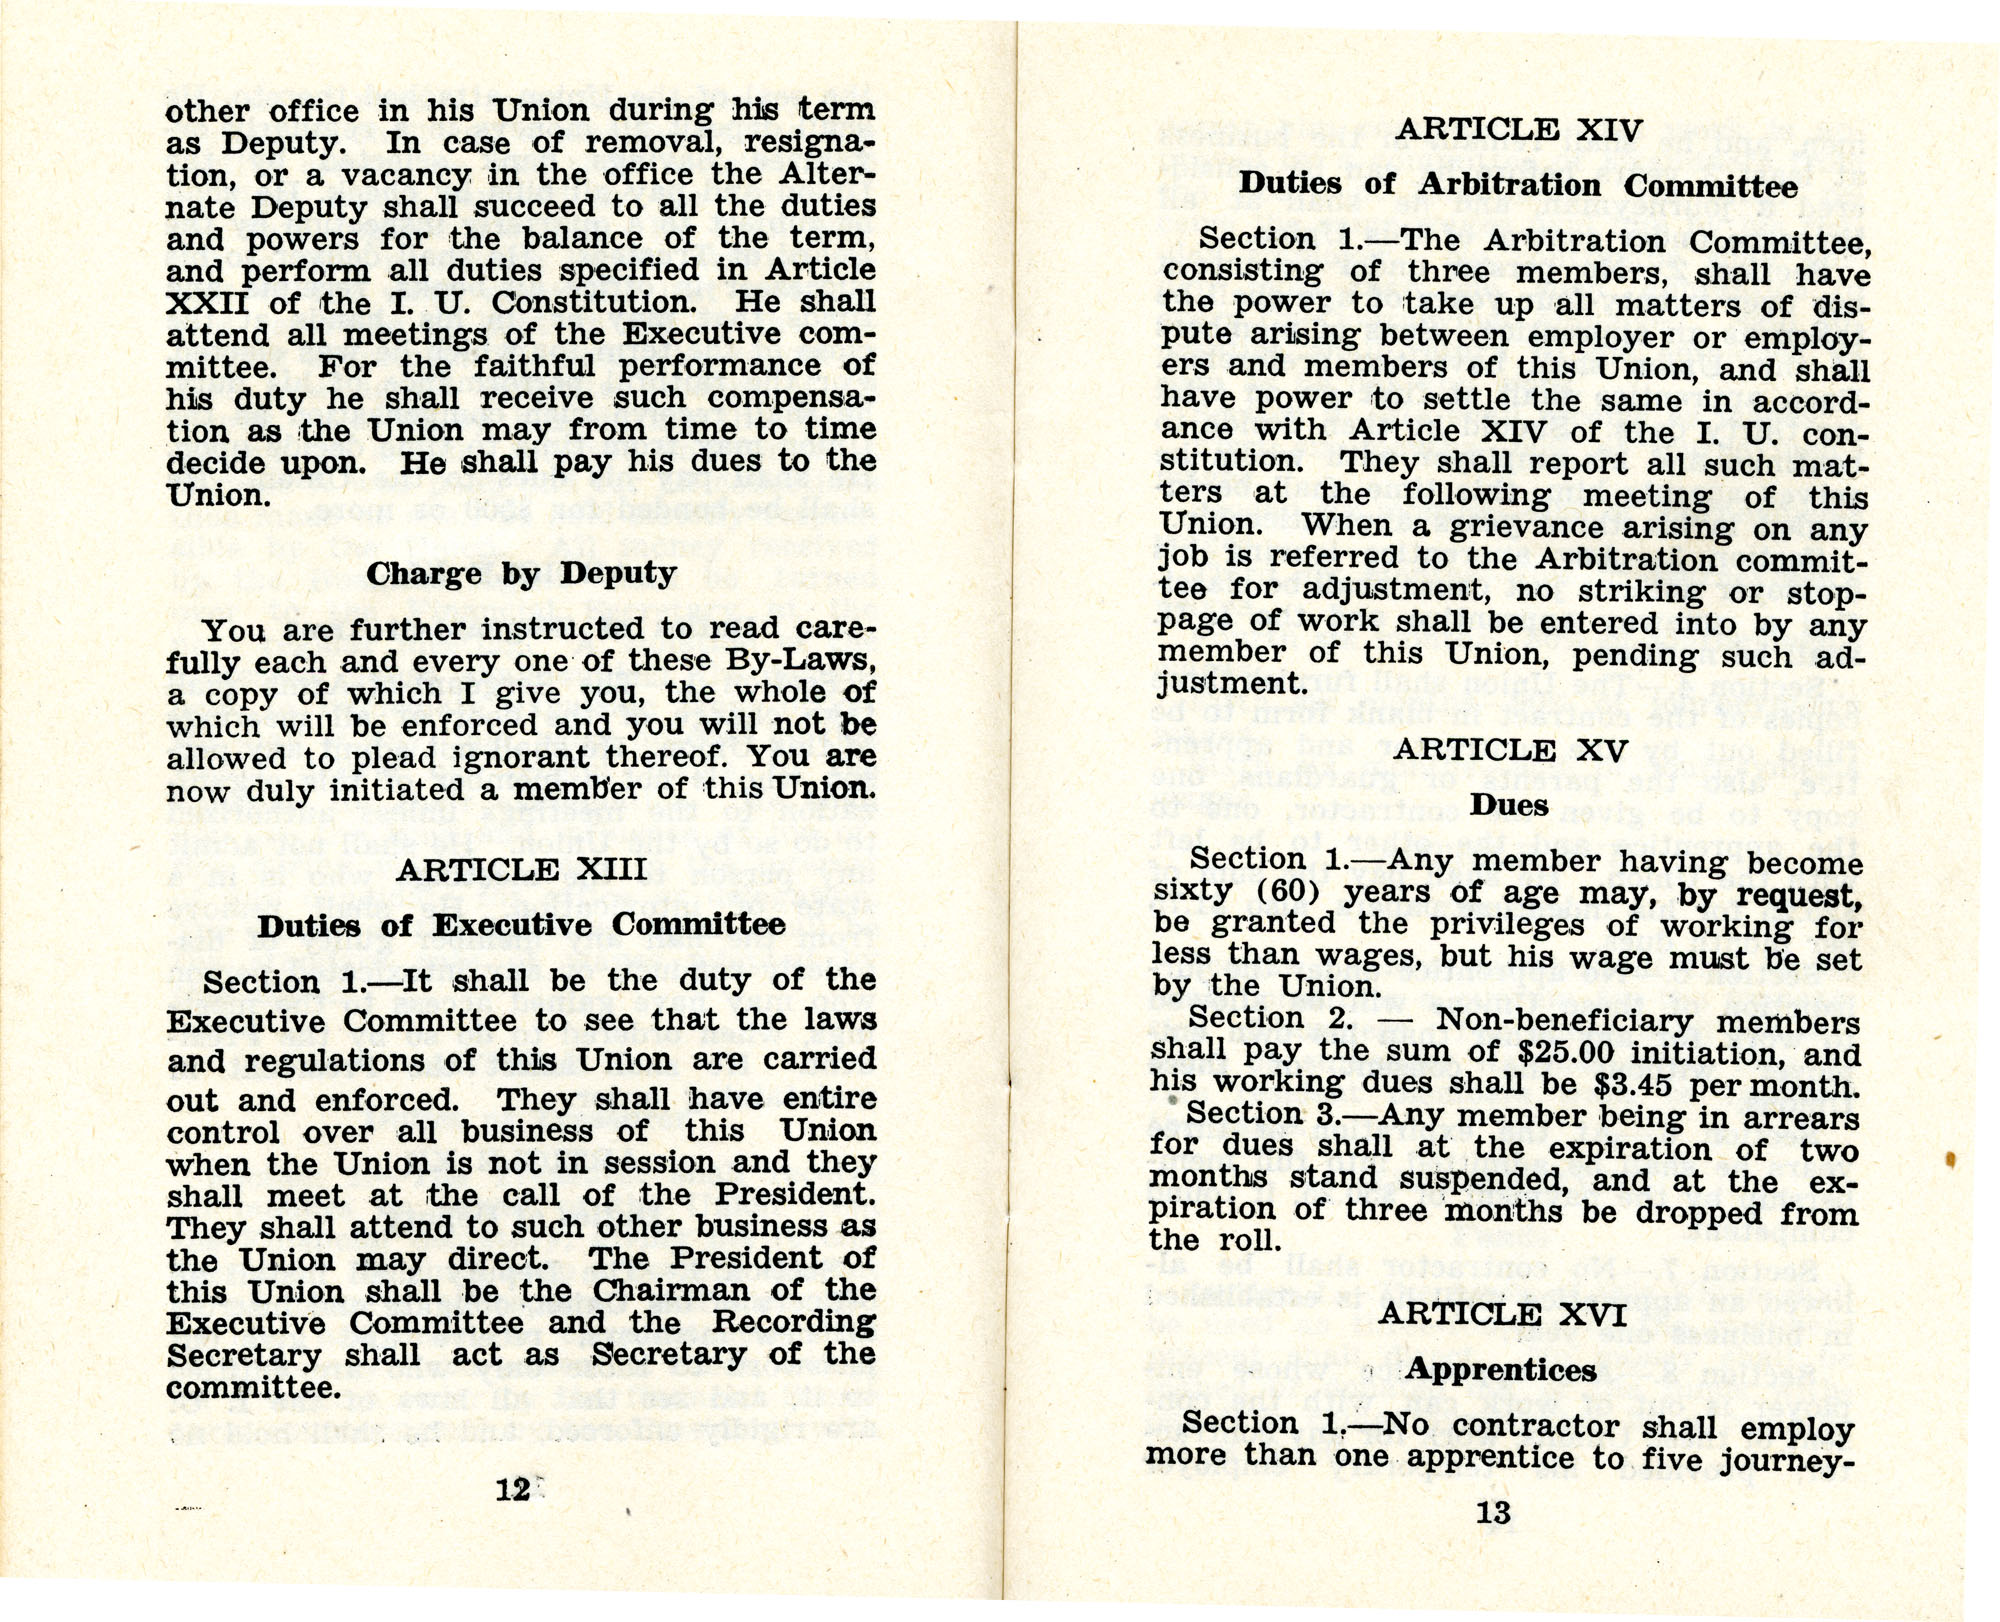 Constitution and by-laws of unions no.1 and 10, Page 7